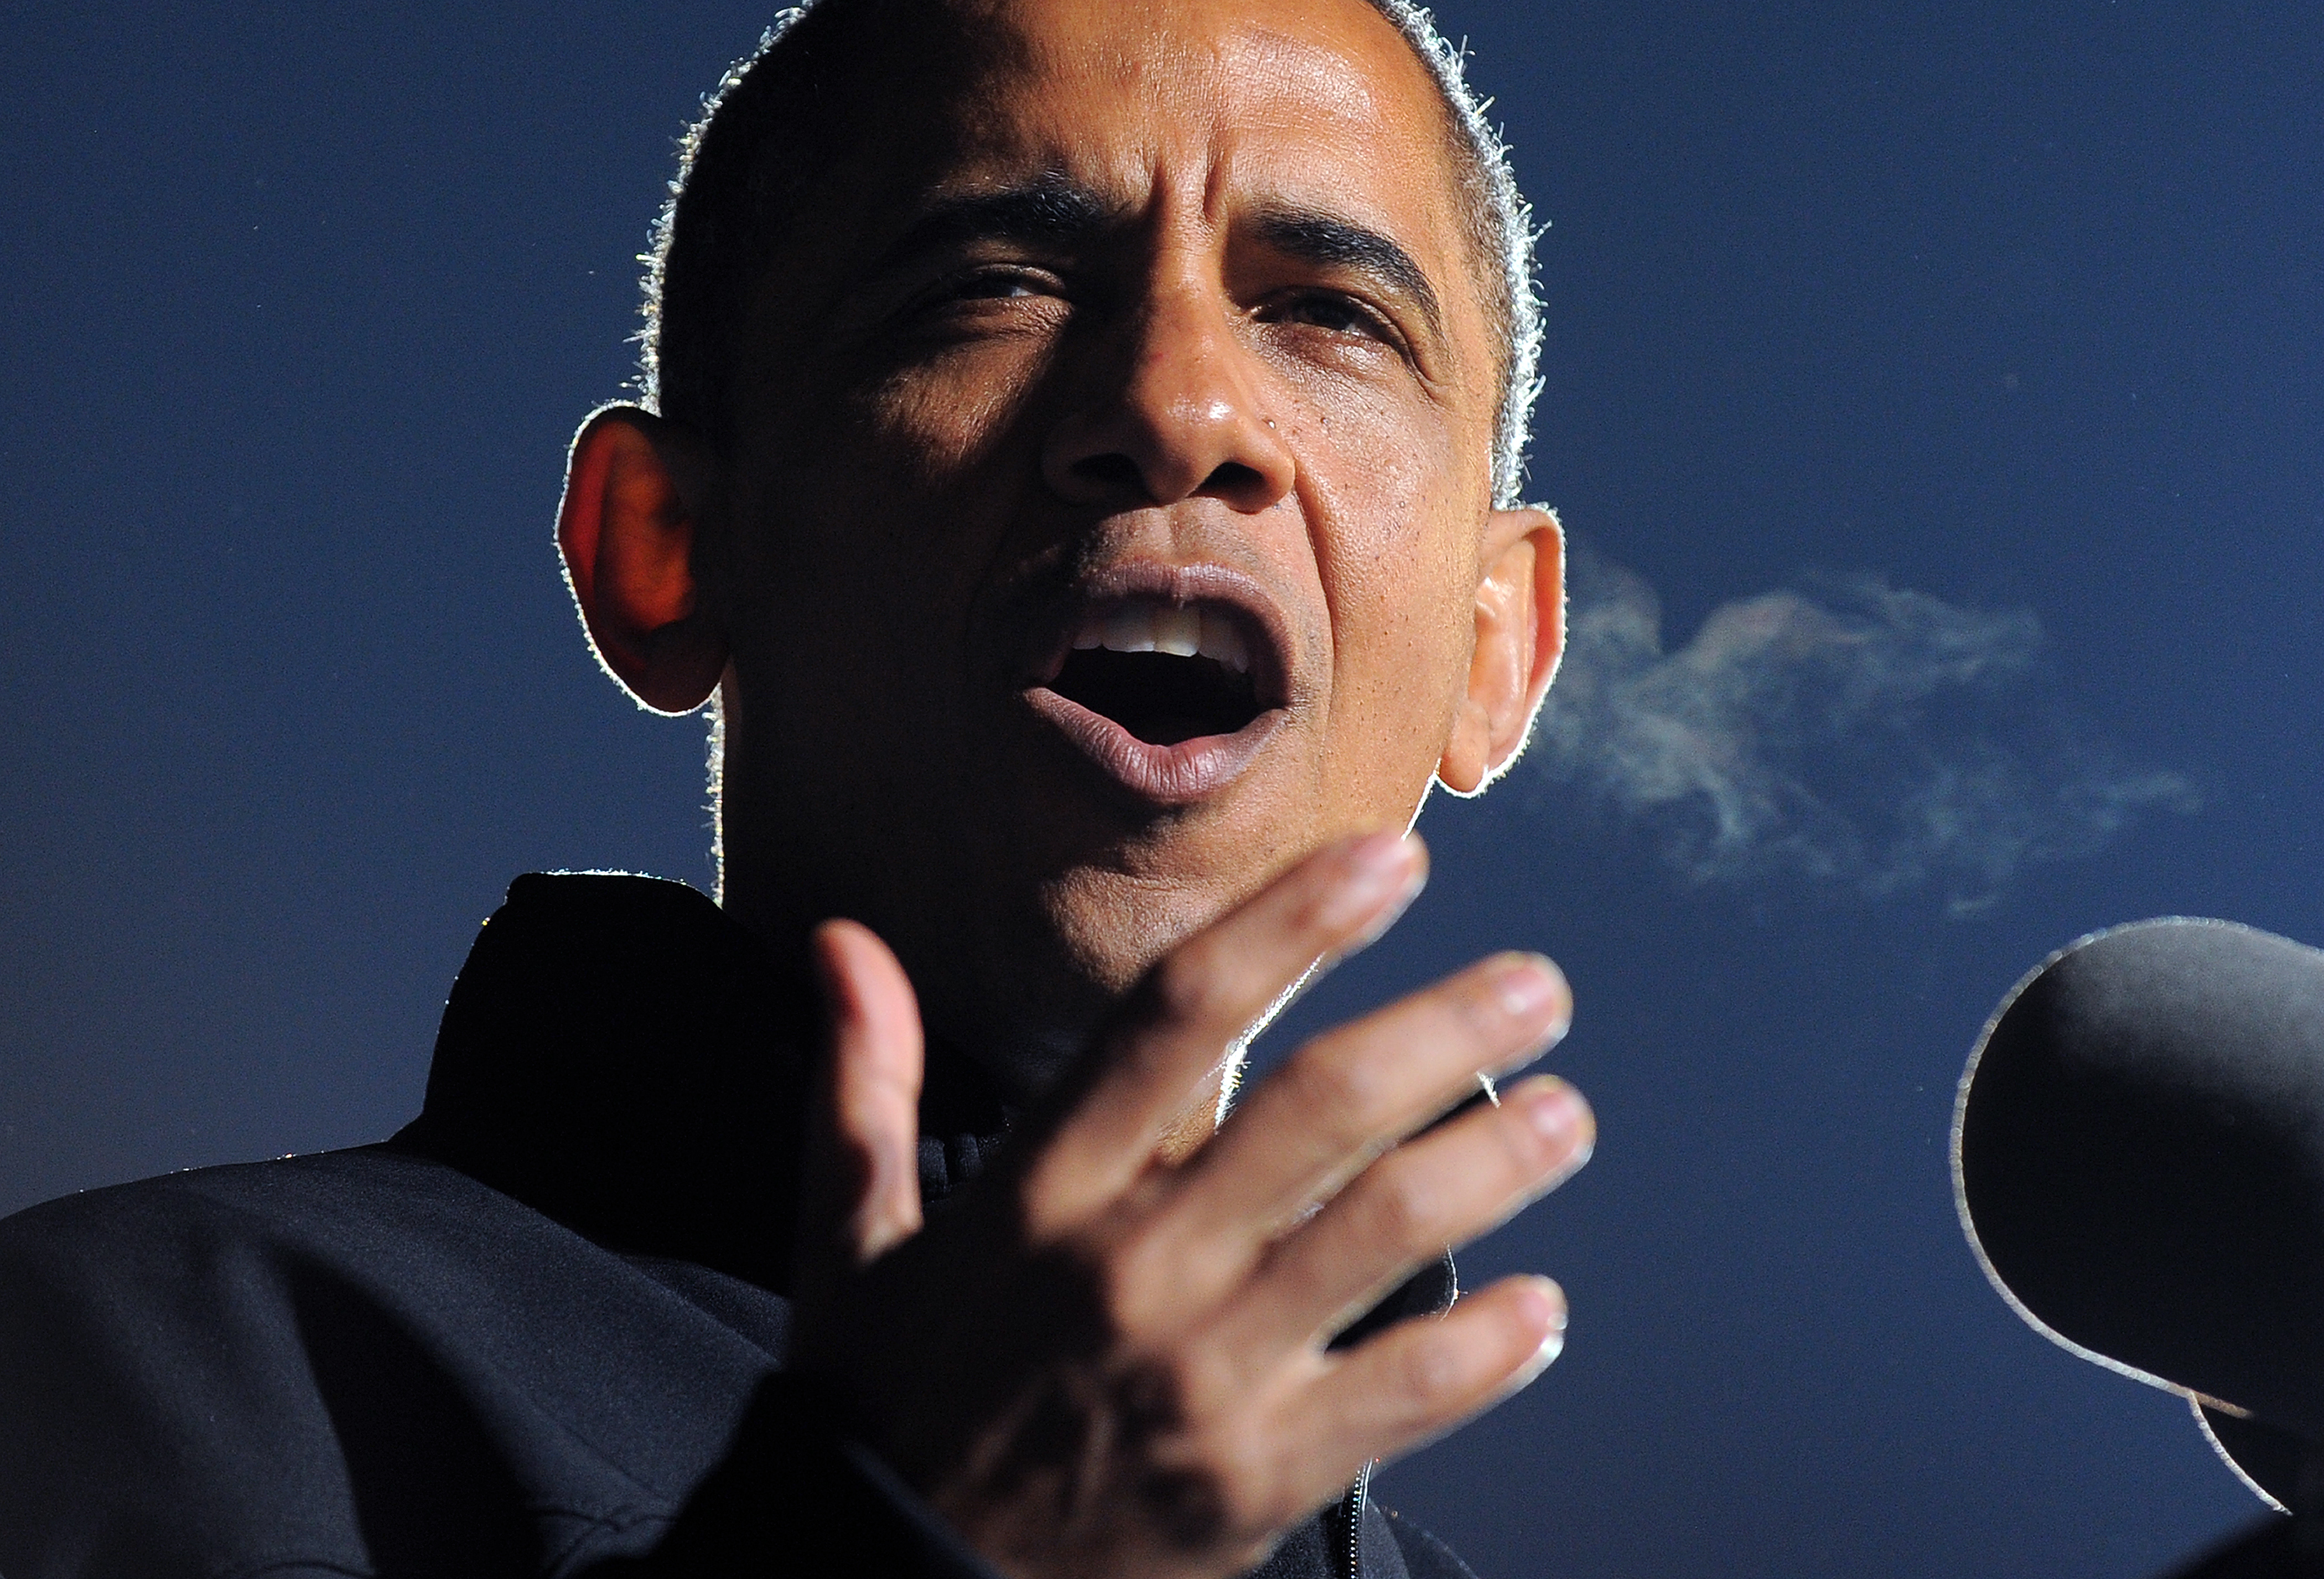 US President Barack Obama speaks at his last campaign rally in Des Moines, Iowa, on November 5, 2012.